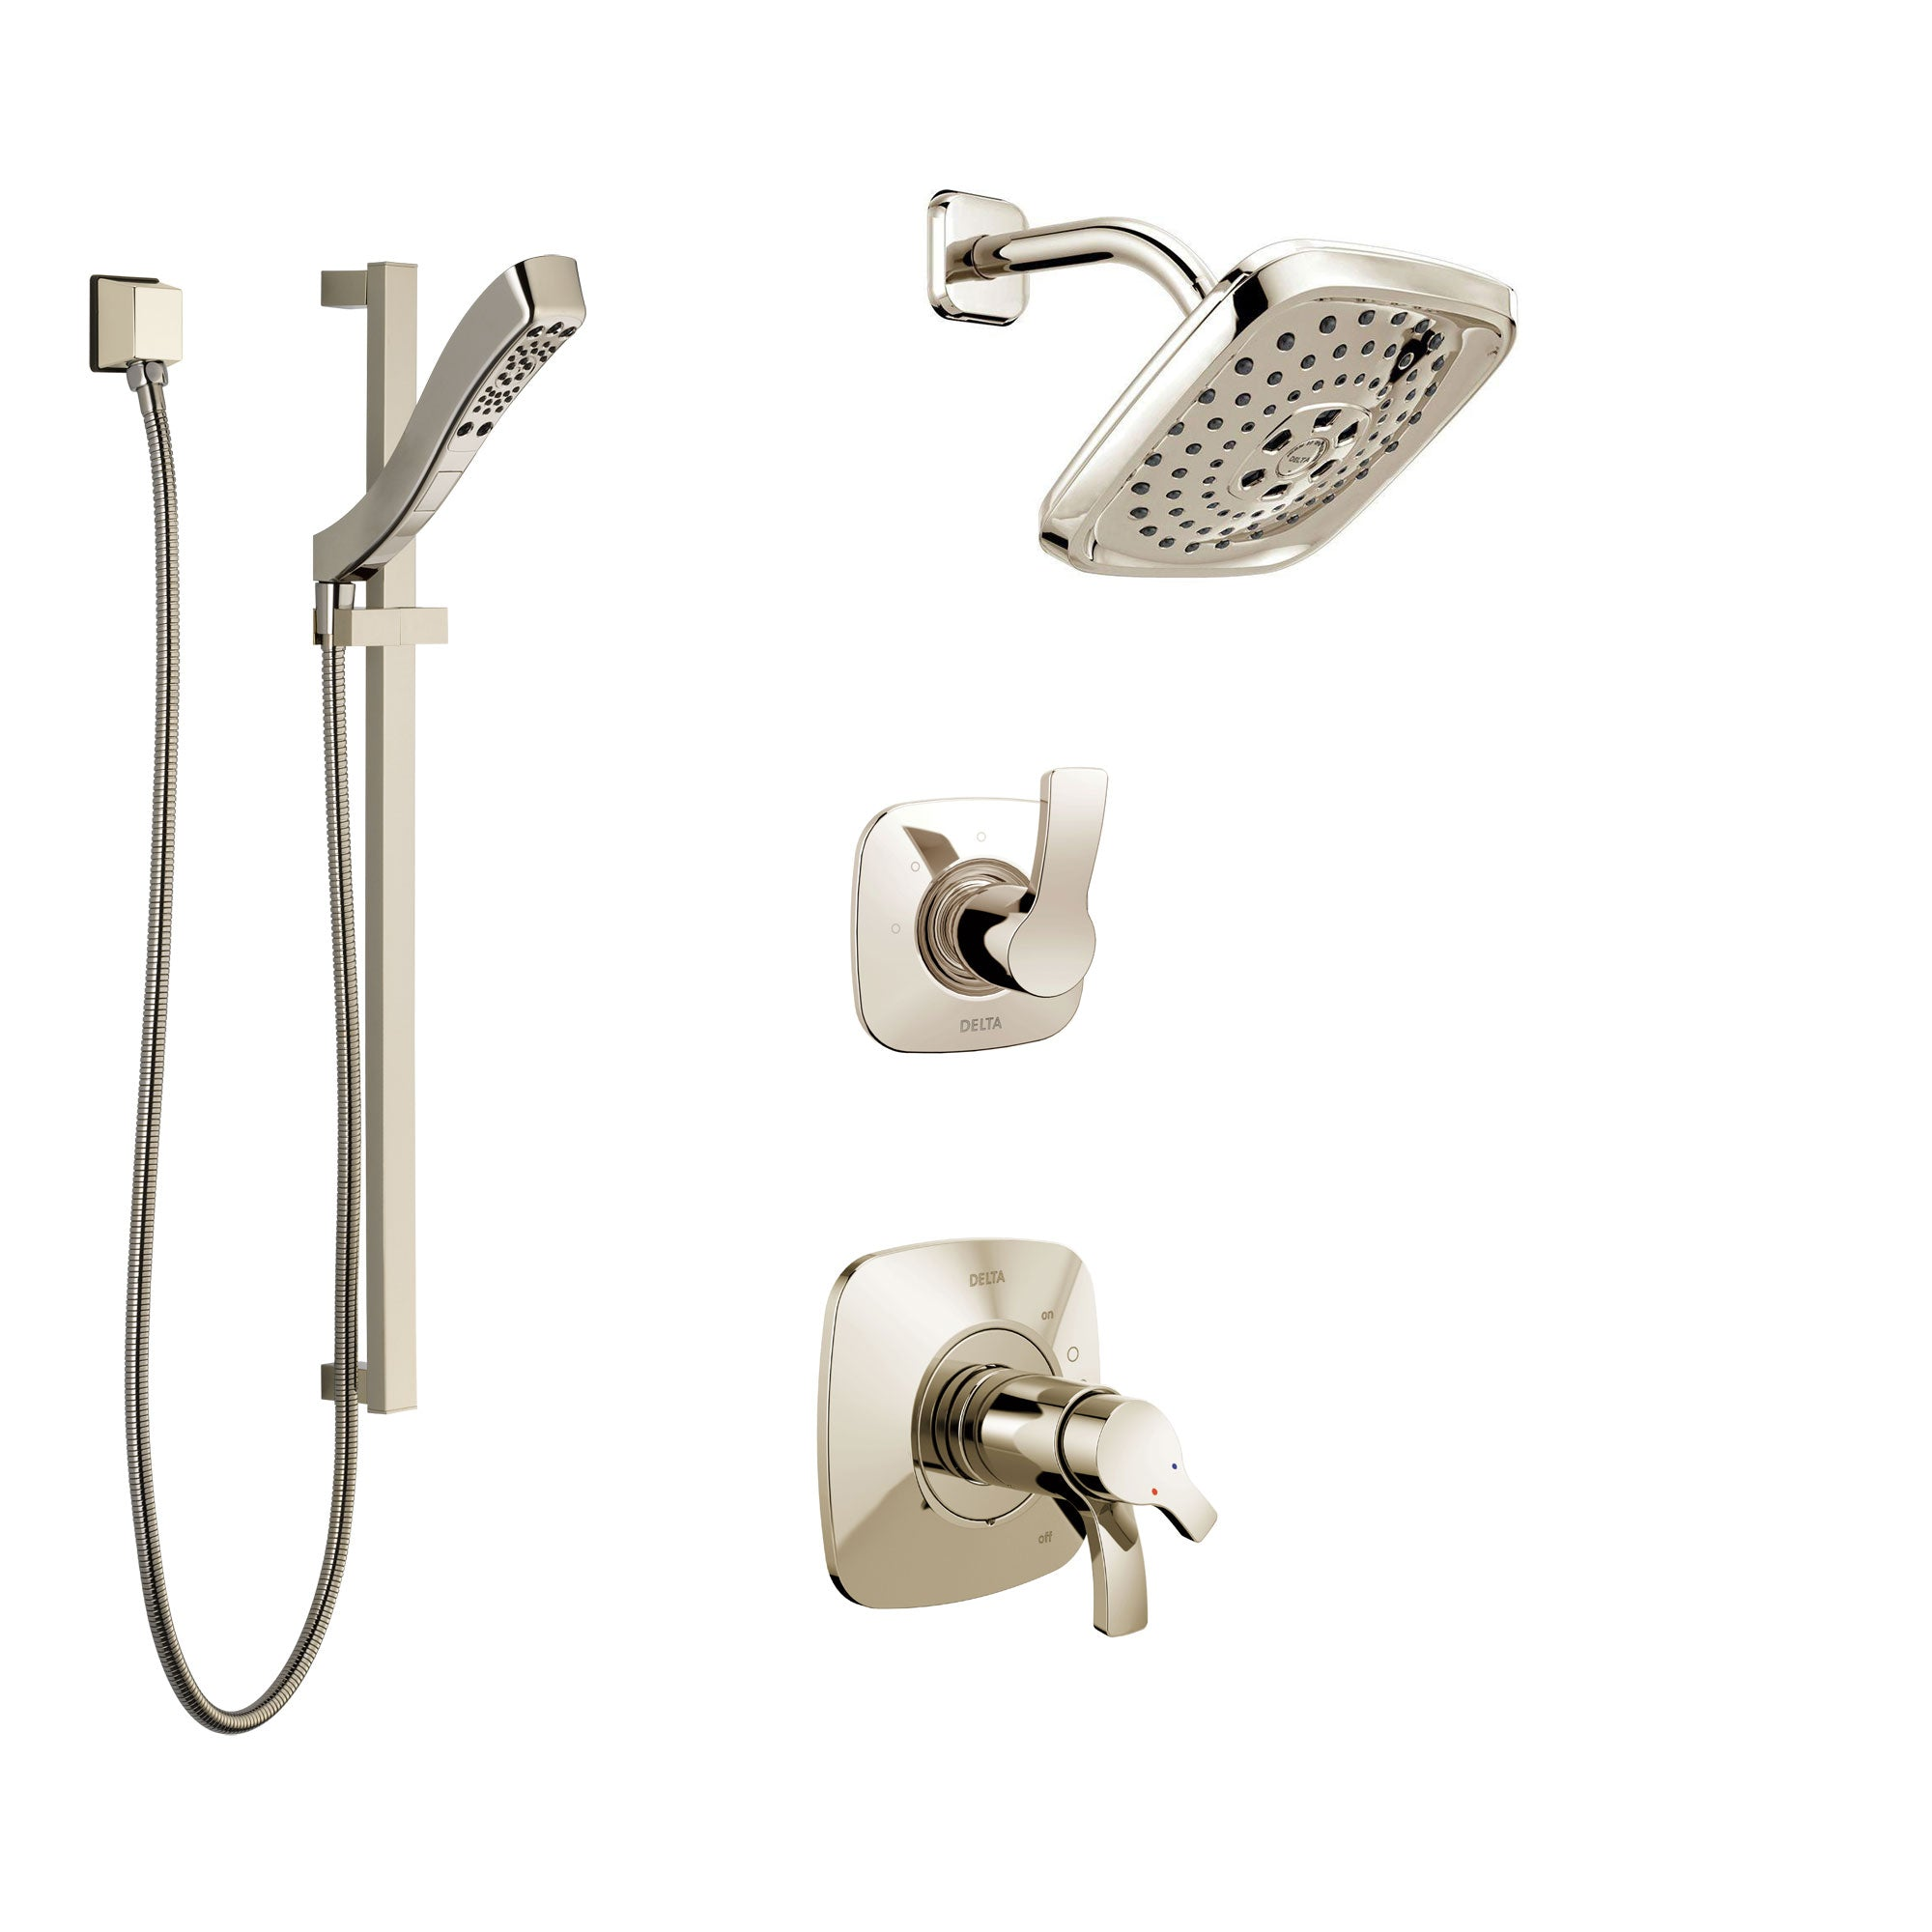 Delta Tesla Polished Nickel Shower System with Dual Thermostatic Control Handle, Diverter, Showerhead, and Hand Shower with Slidebar SS17T2522PN2